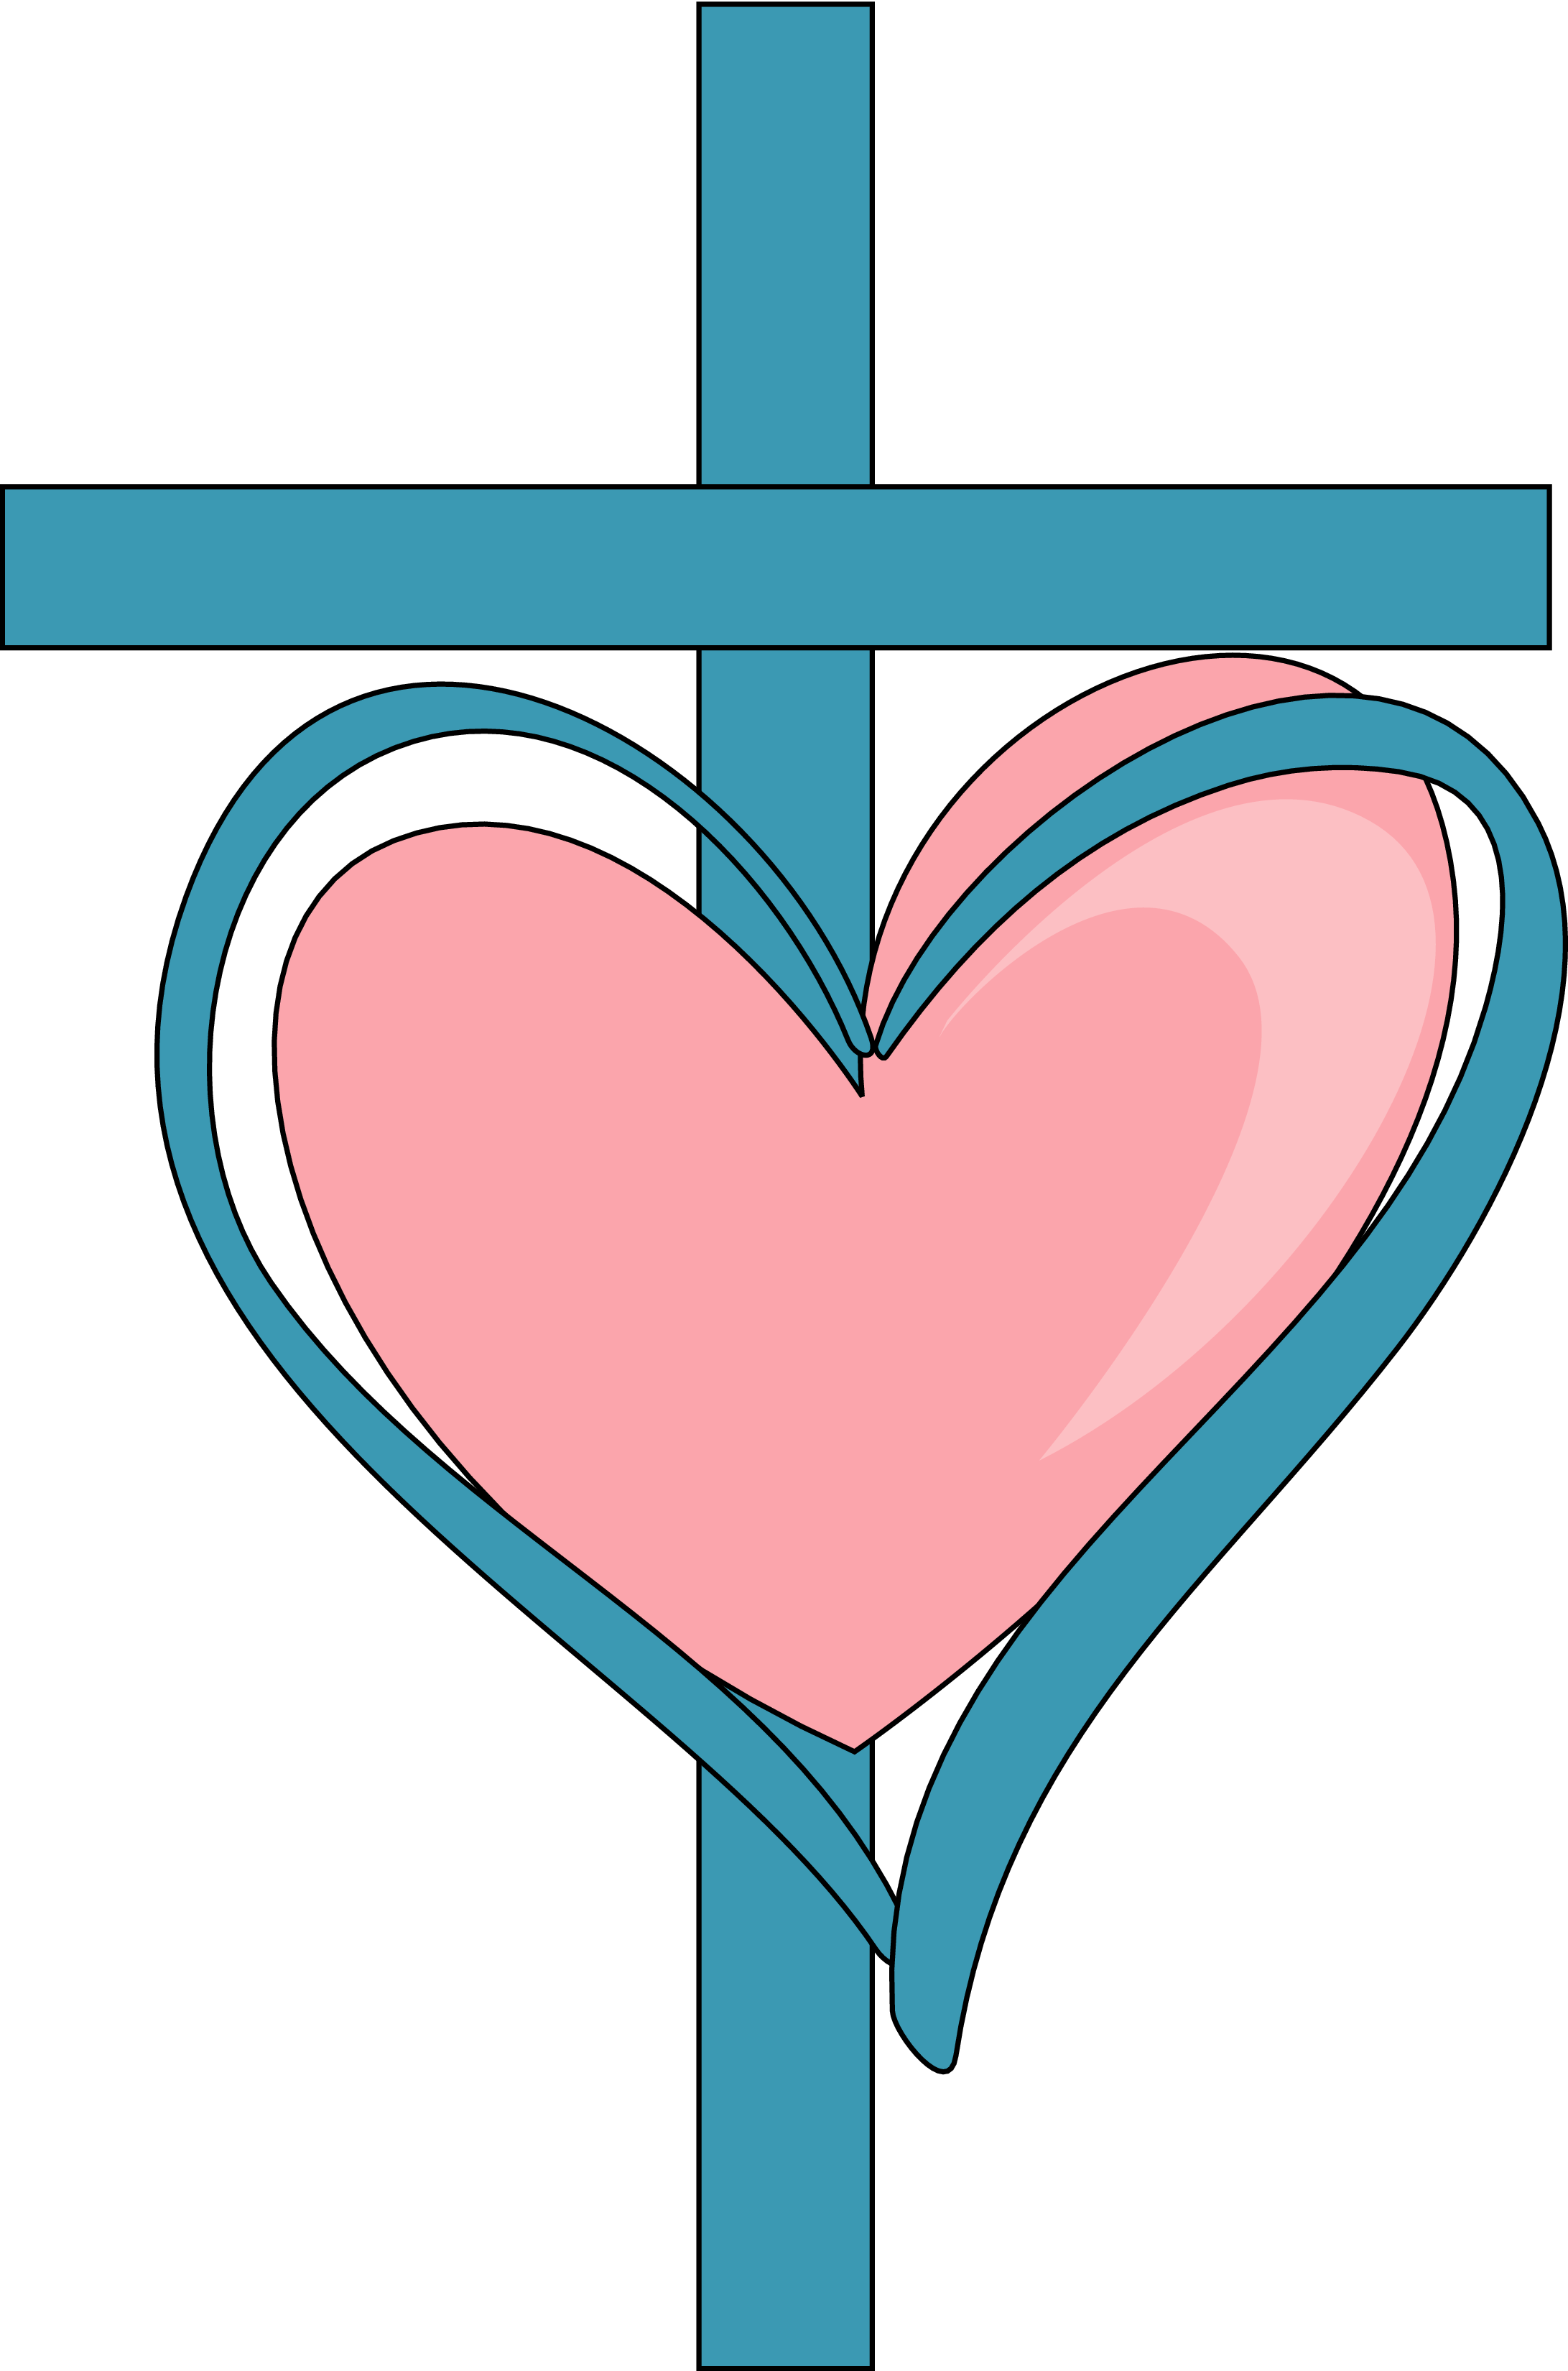 Cross w heart clipart graphic transparent library Index of /hp_wordpress/wp-content/uploads/2012/12 graphic transparent library